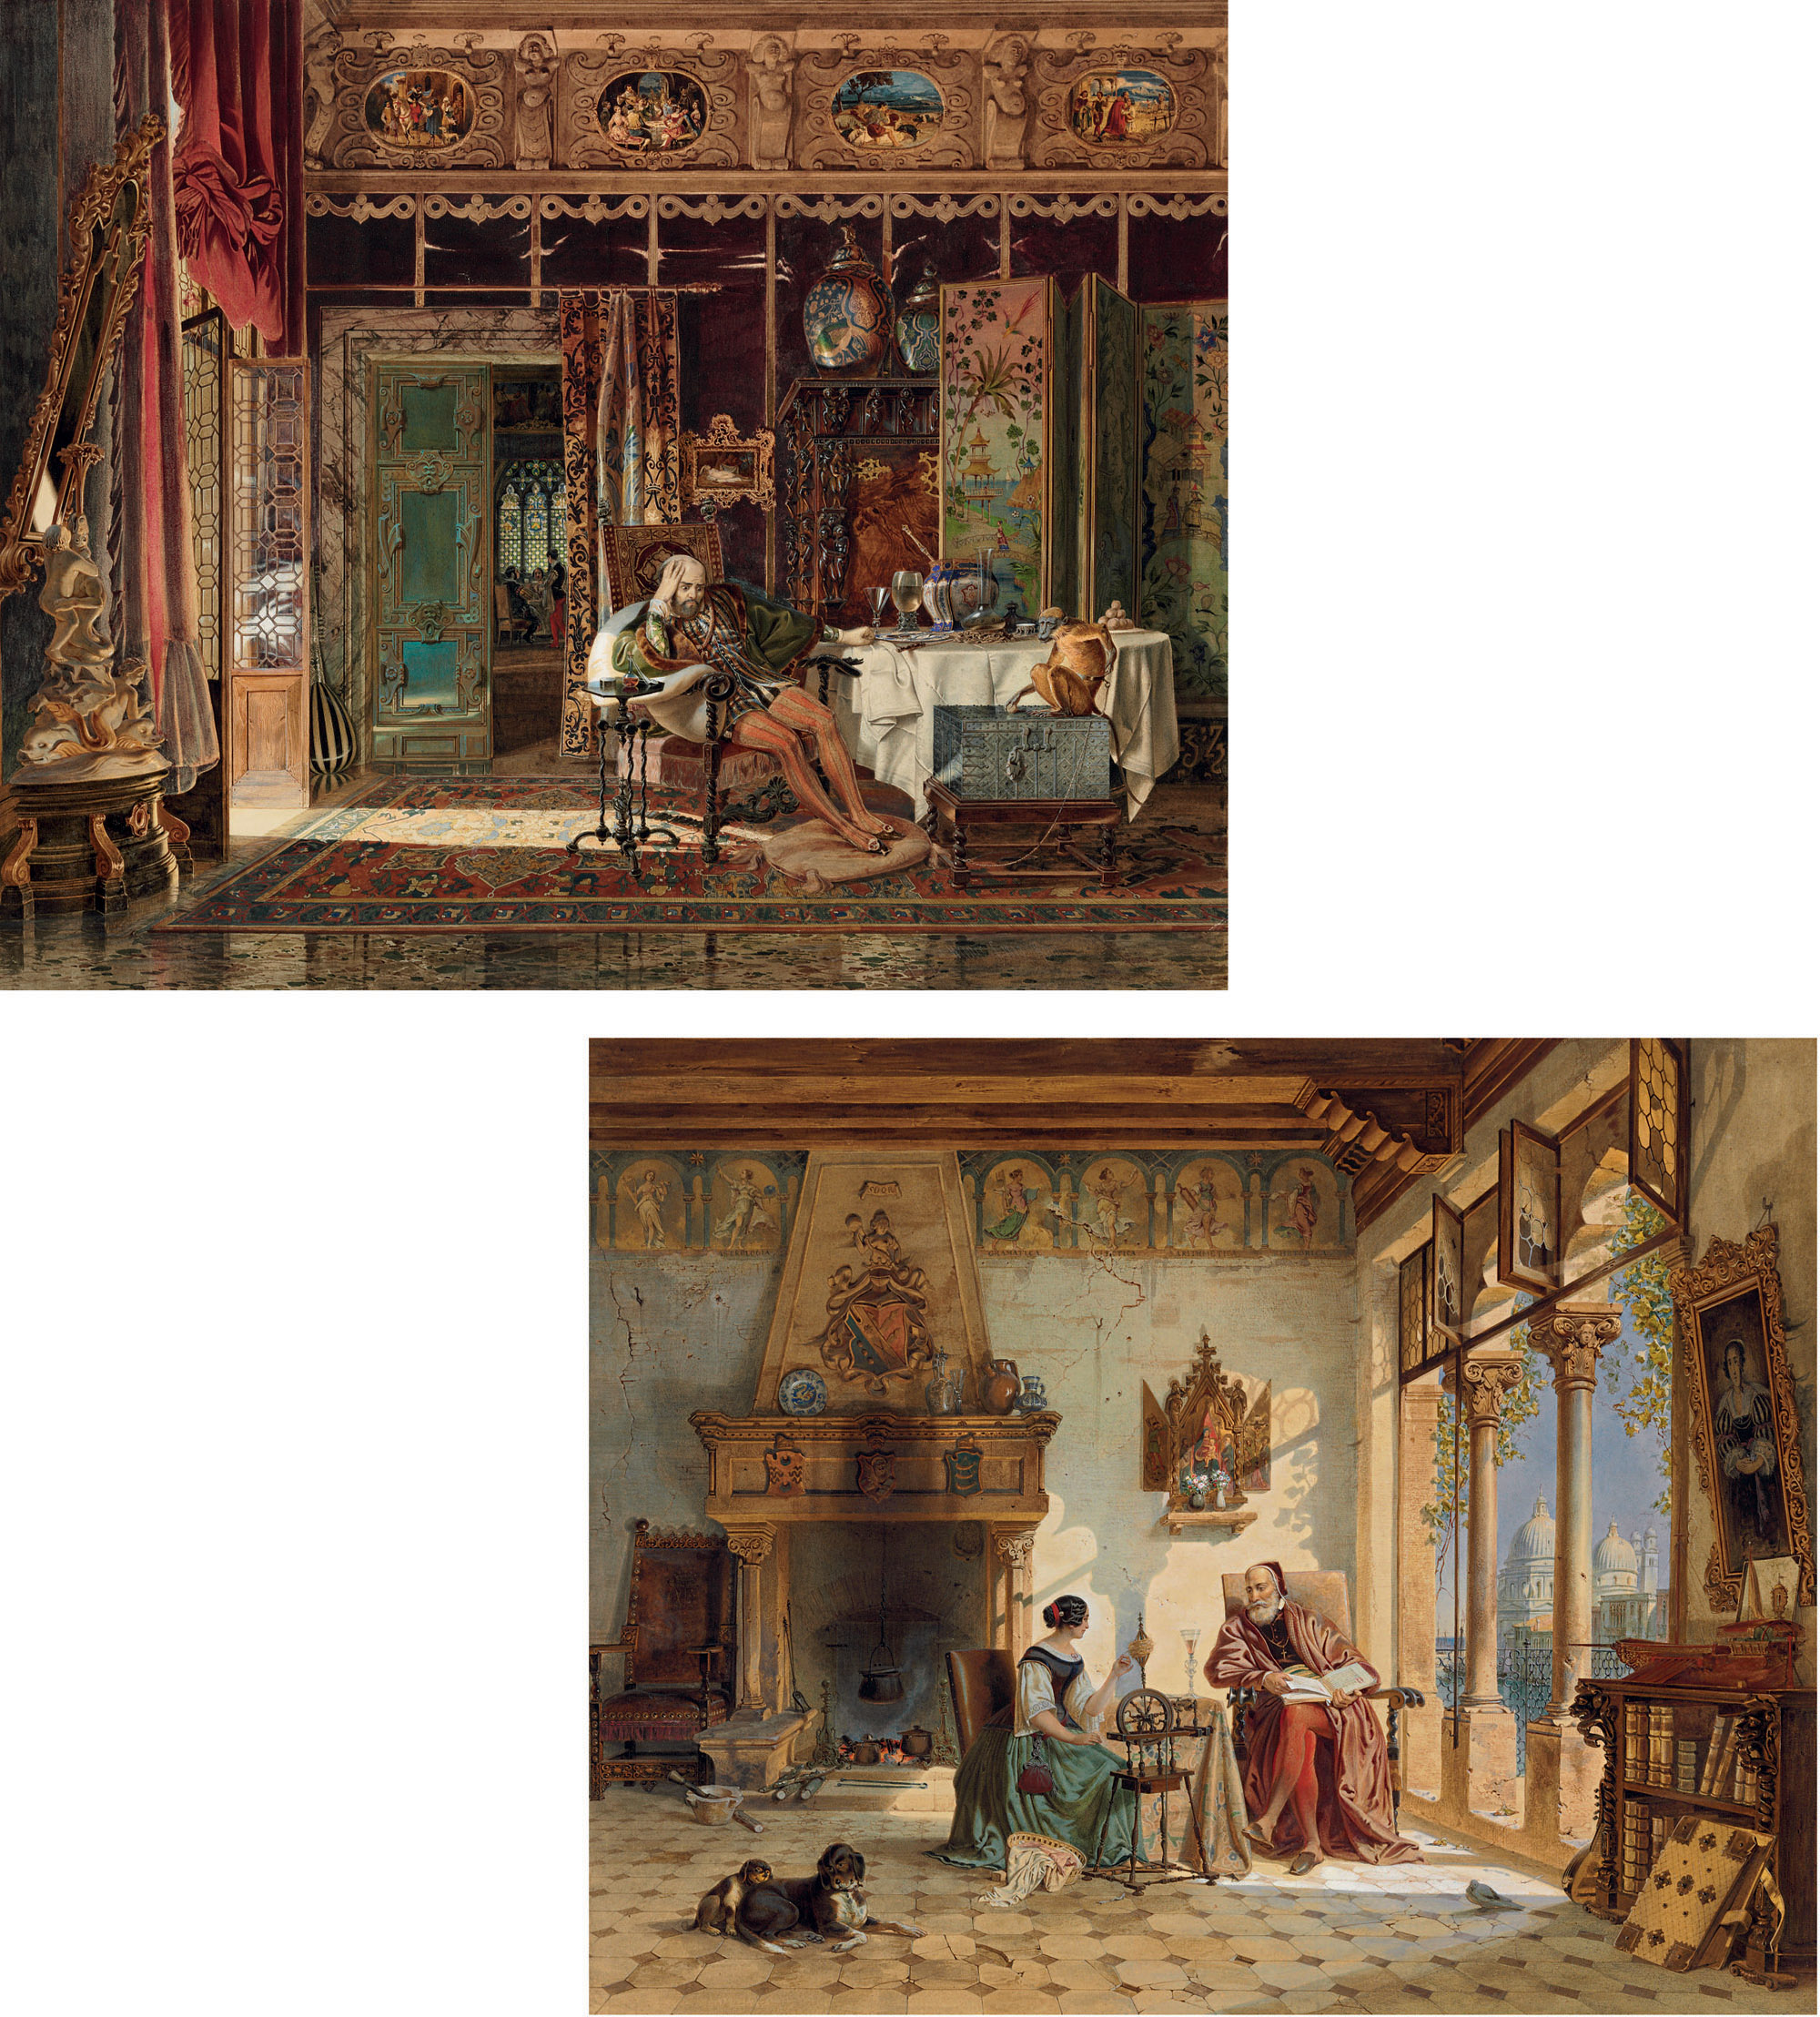 A troubadour brooding in an elaborate interior; and A priest and a woman spinning yarn in a Venetian interior